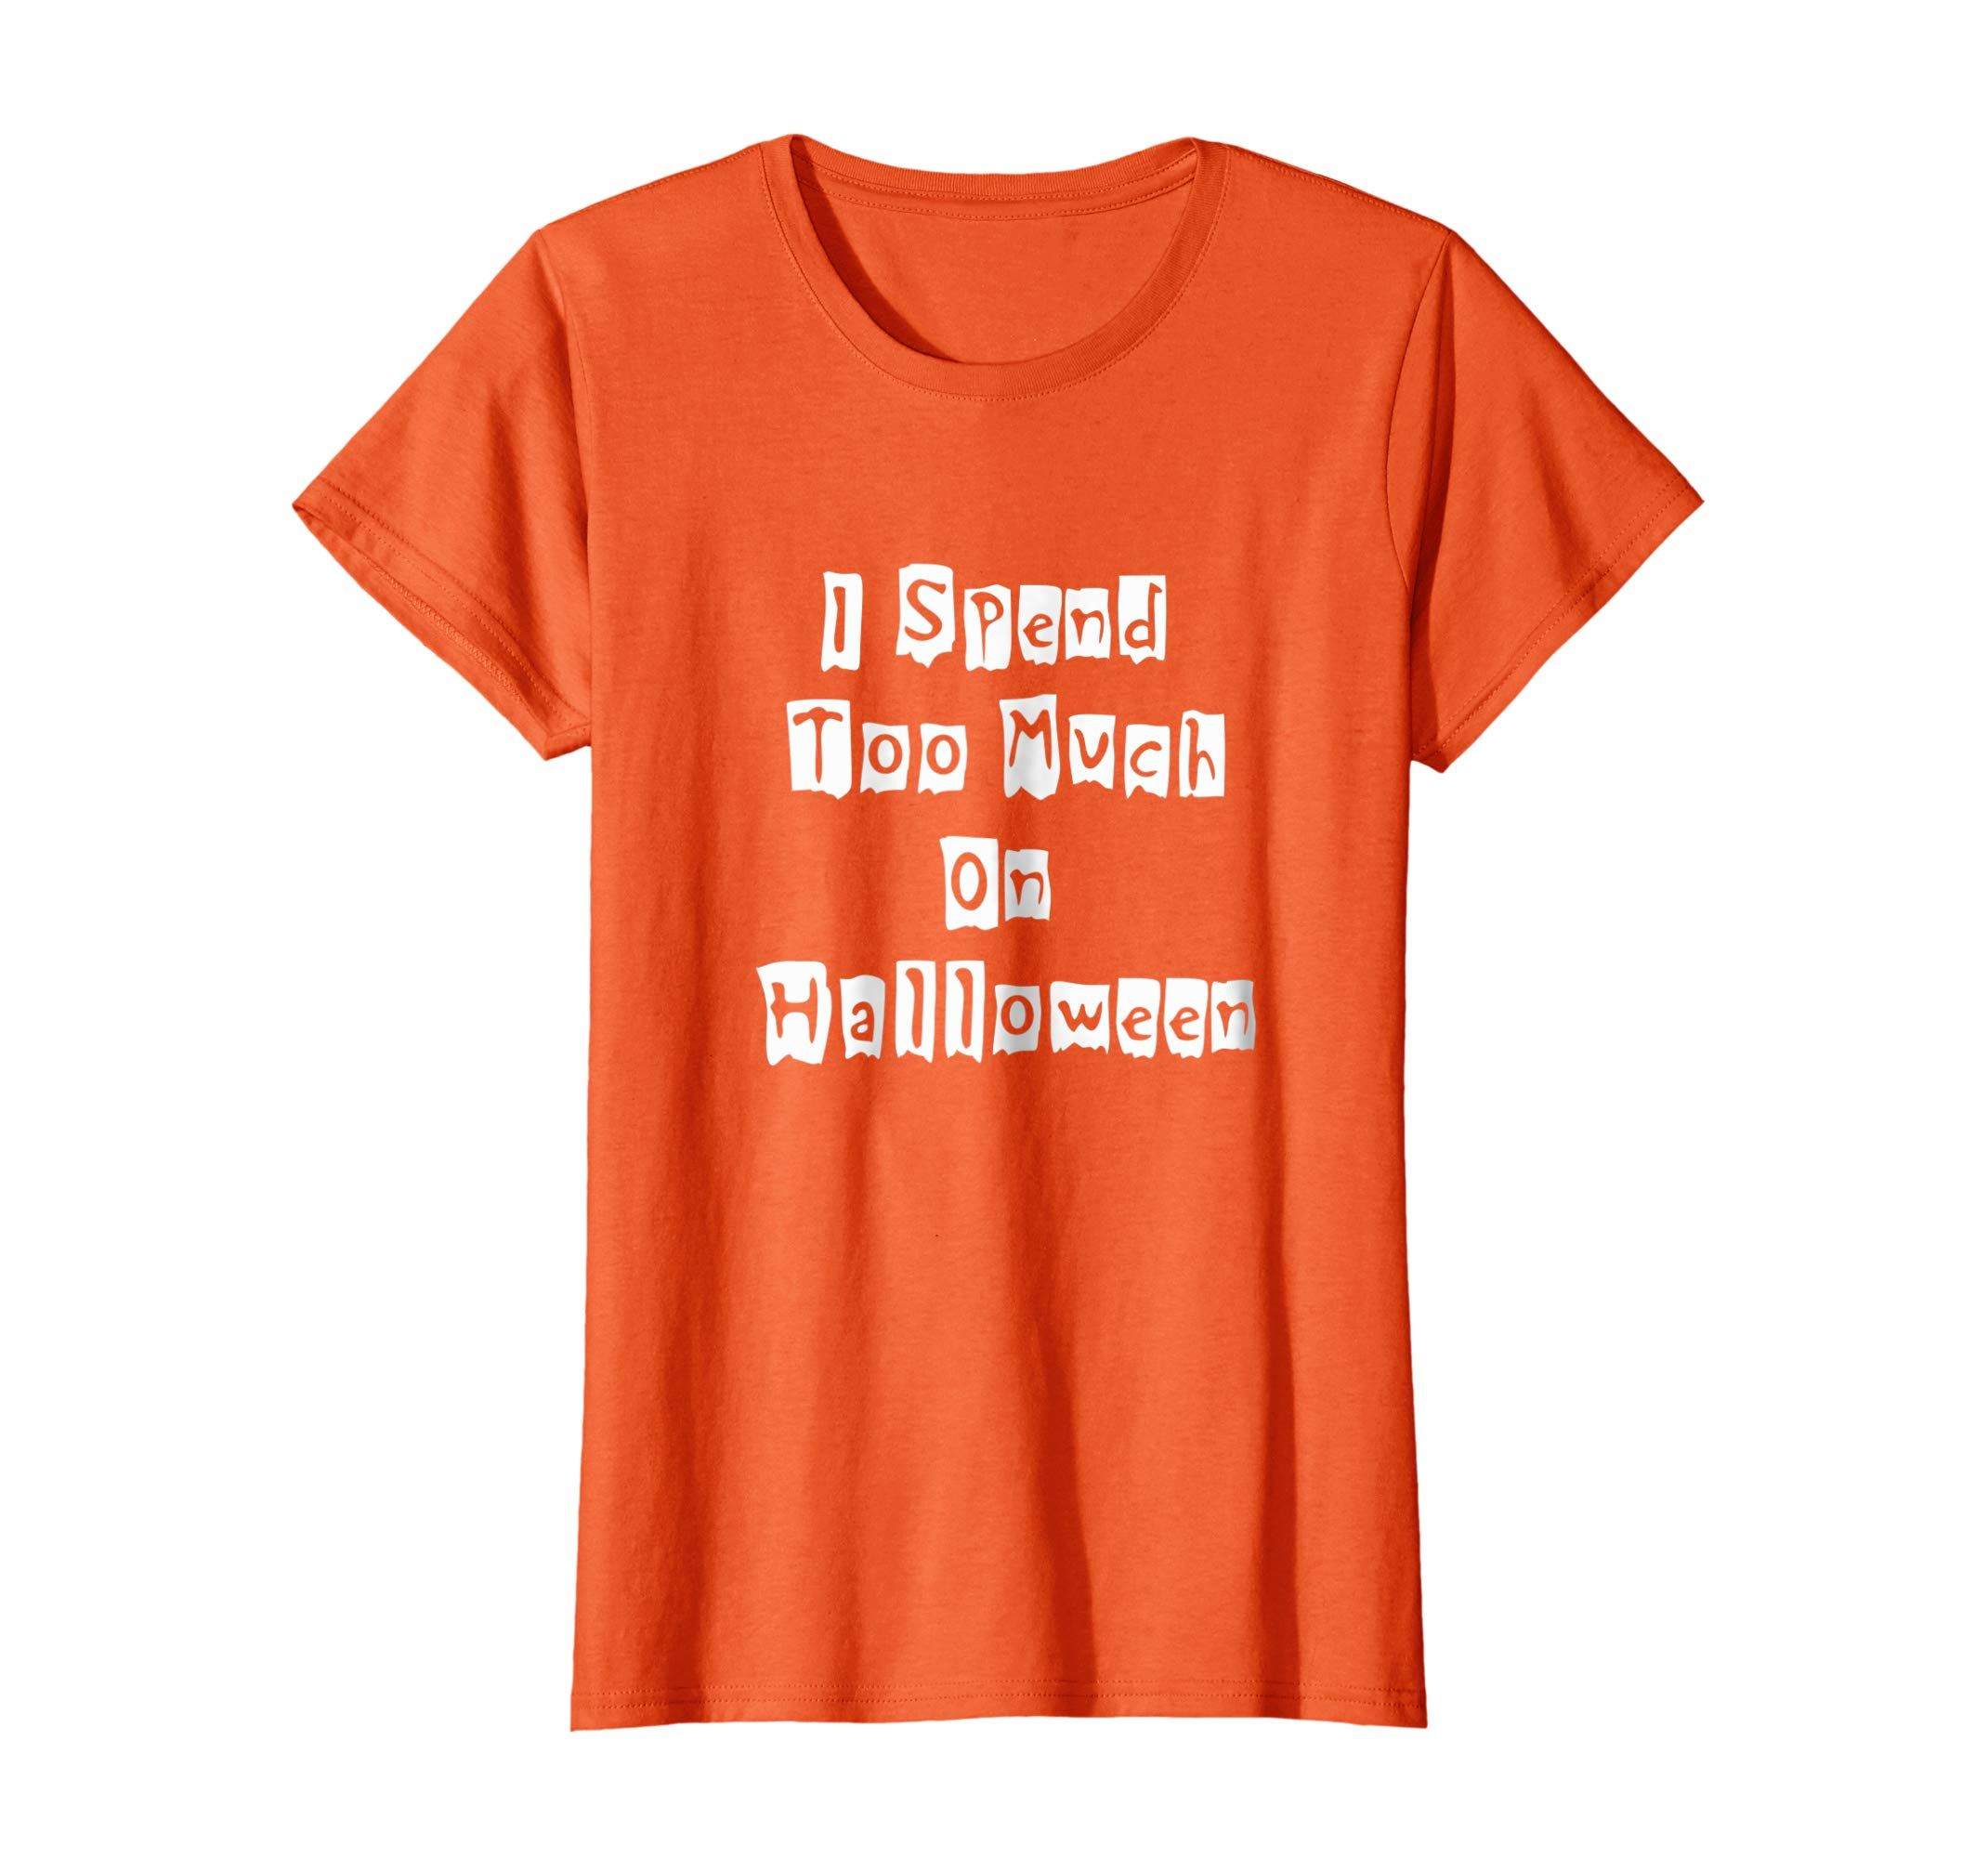 Amazoncom I Spend Too Much On Halloween Funny Shirt Clothing